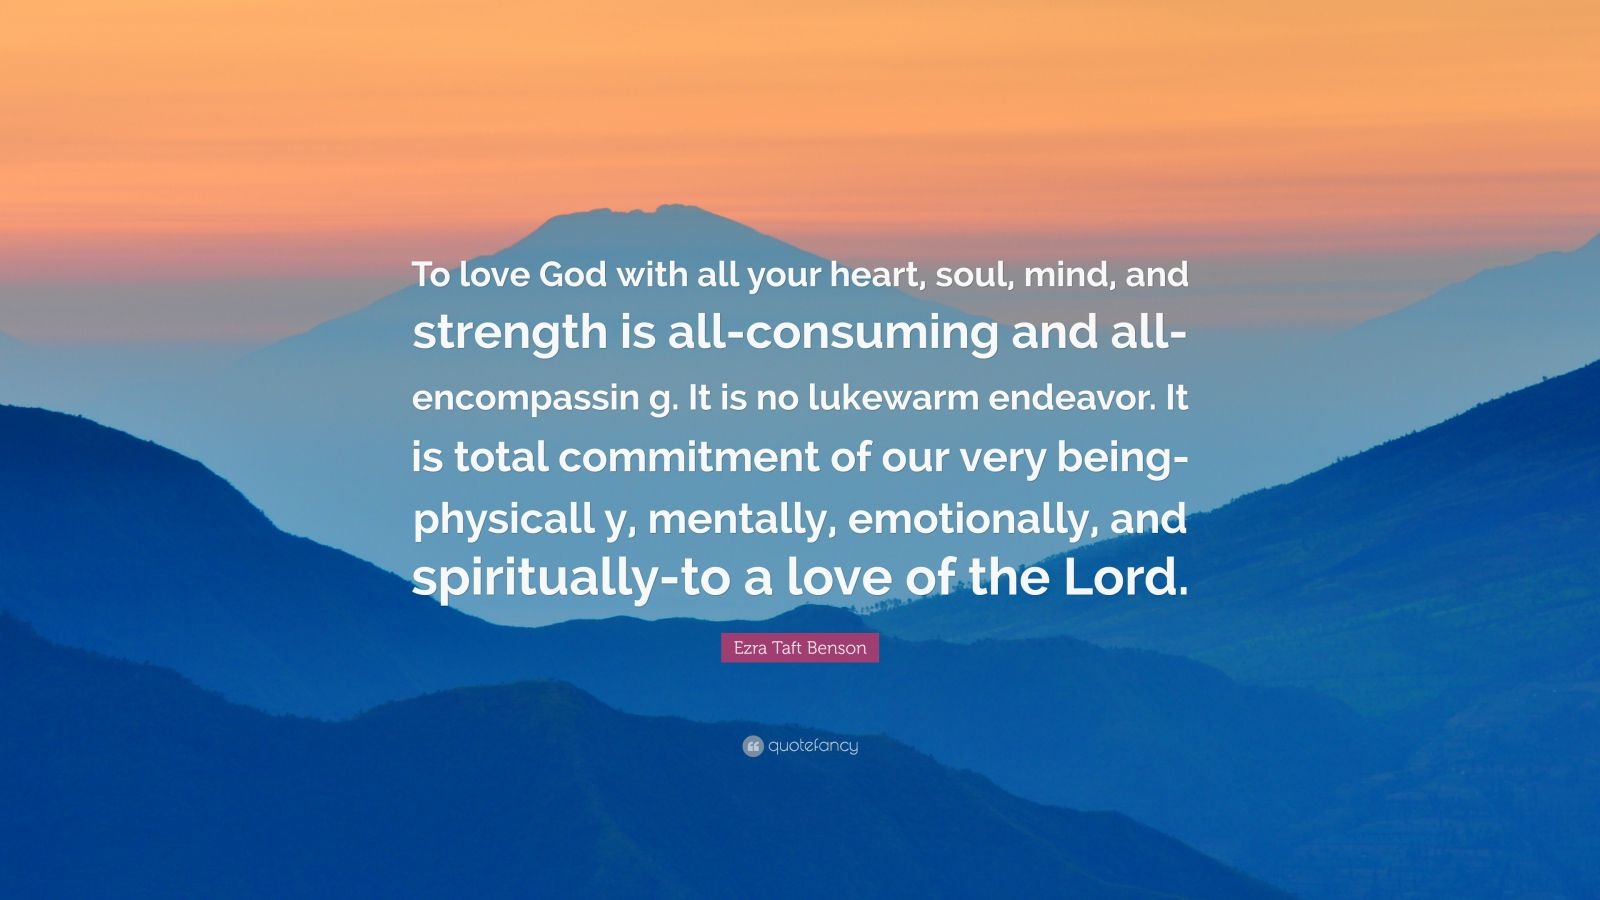 """Ezra Taft Benson Quote: """"To love God with all your heart, soul, mind, and strength is all-consuming and all-encompassin g. It is no lukewarm endeavor. It is total commitment of our very being-physicall y, mentally, emotionally, and spiritually-to a love of the Lord."""""""